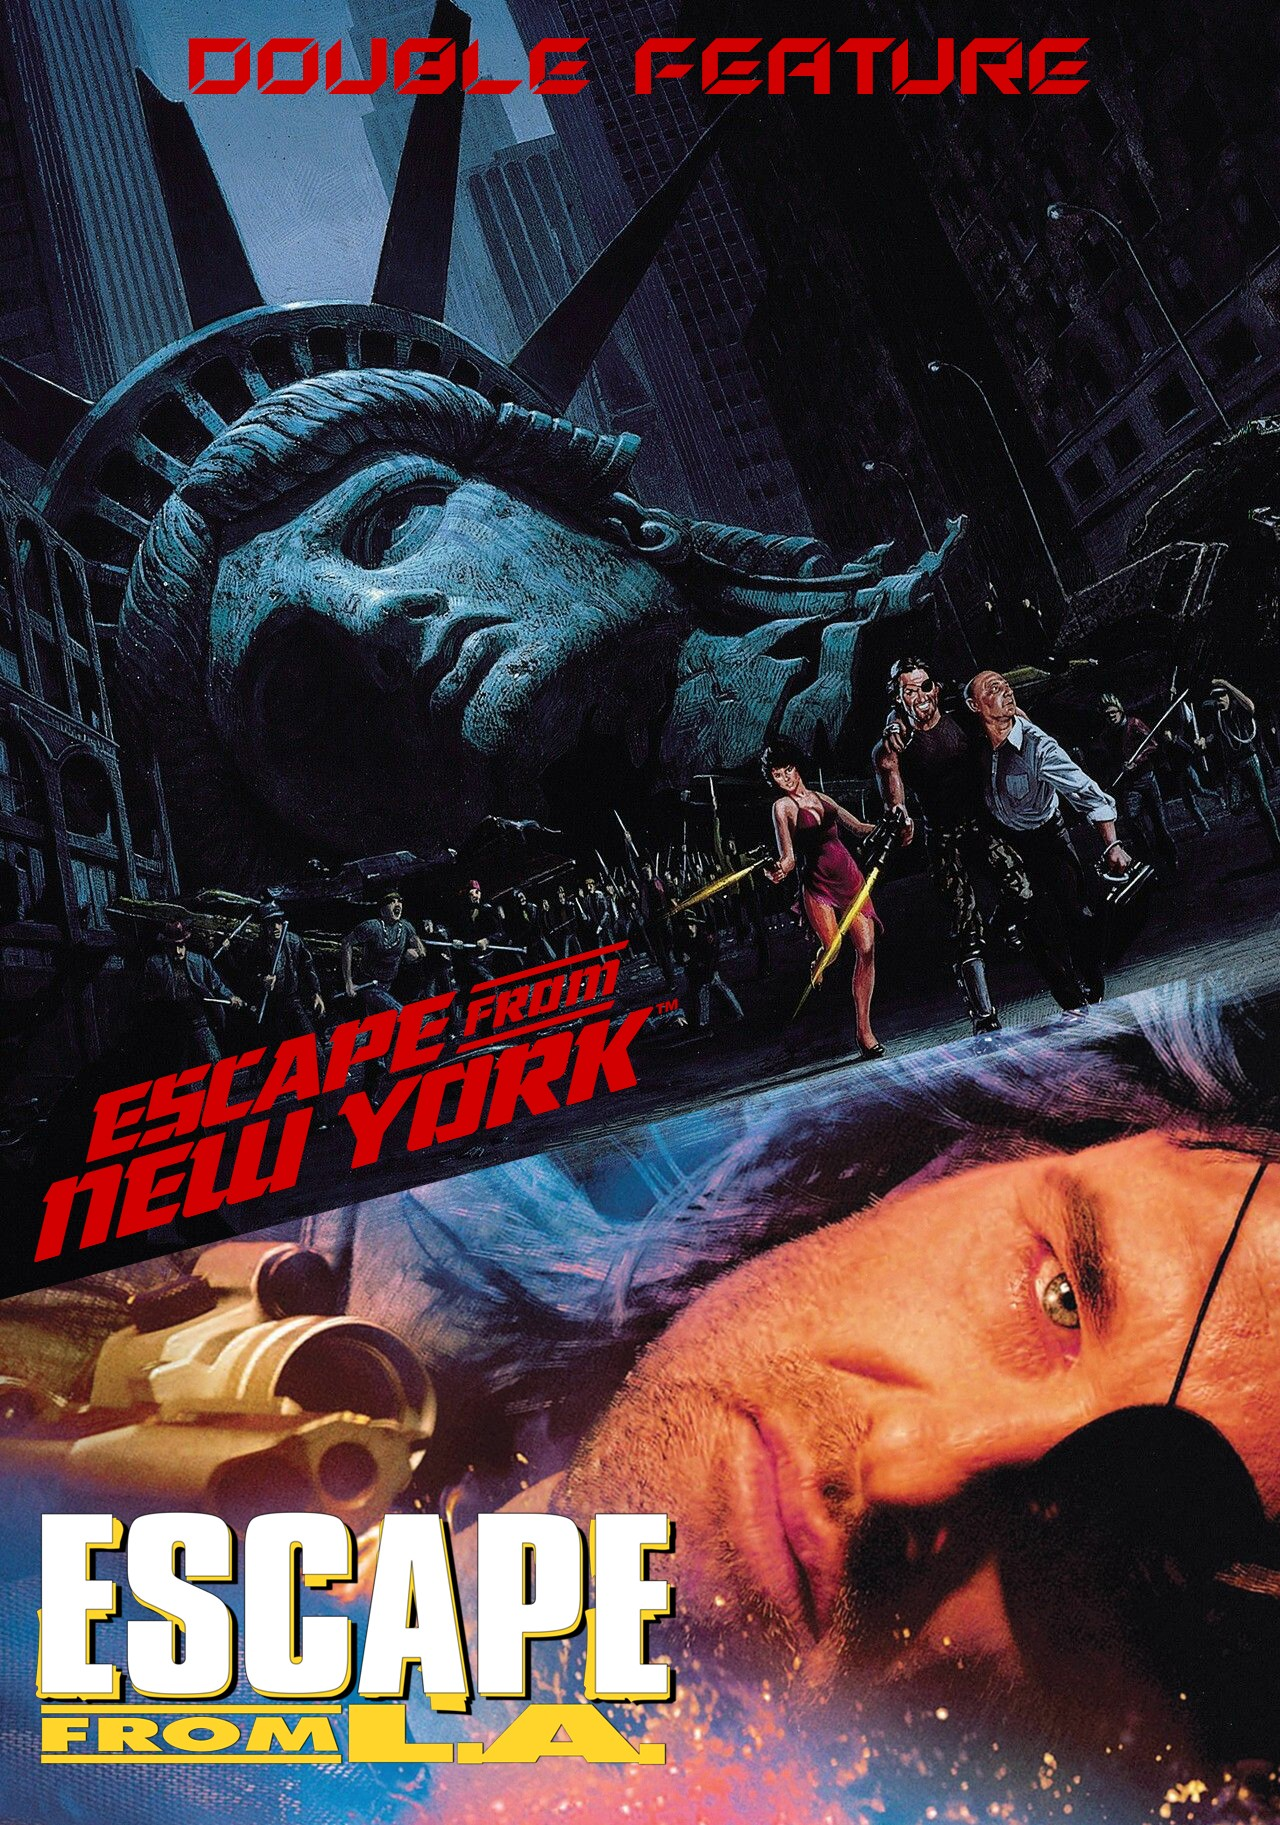 ESCAPE FROM NEW YORK & L.A.- DOUBLE FEATURE